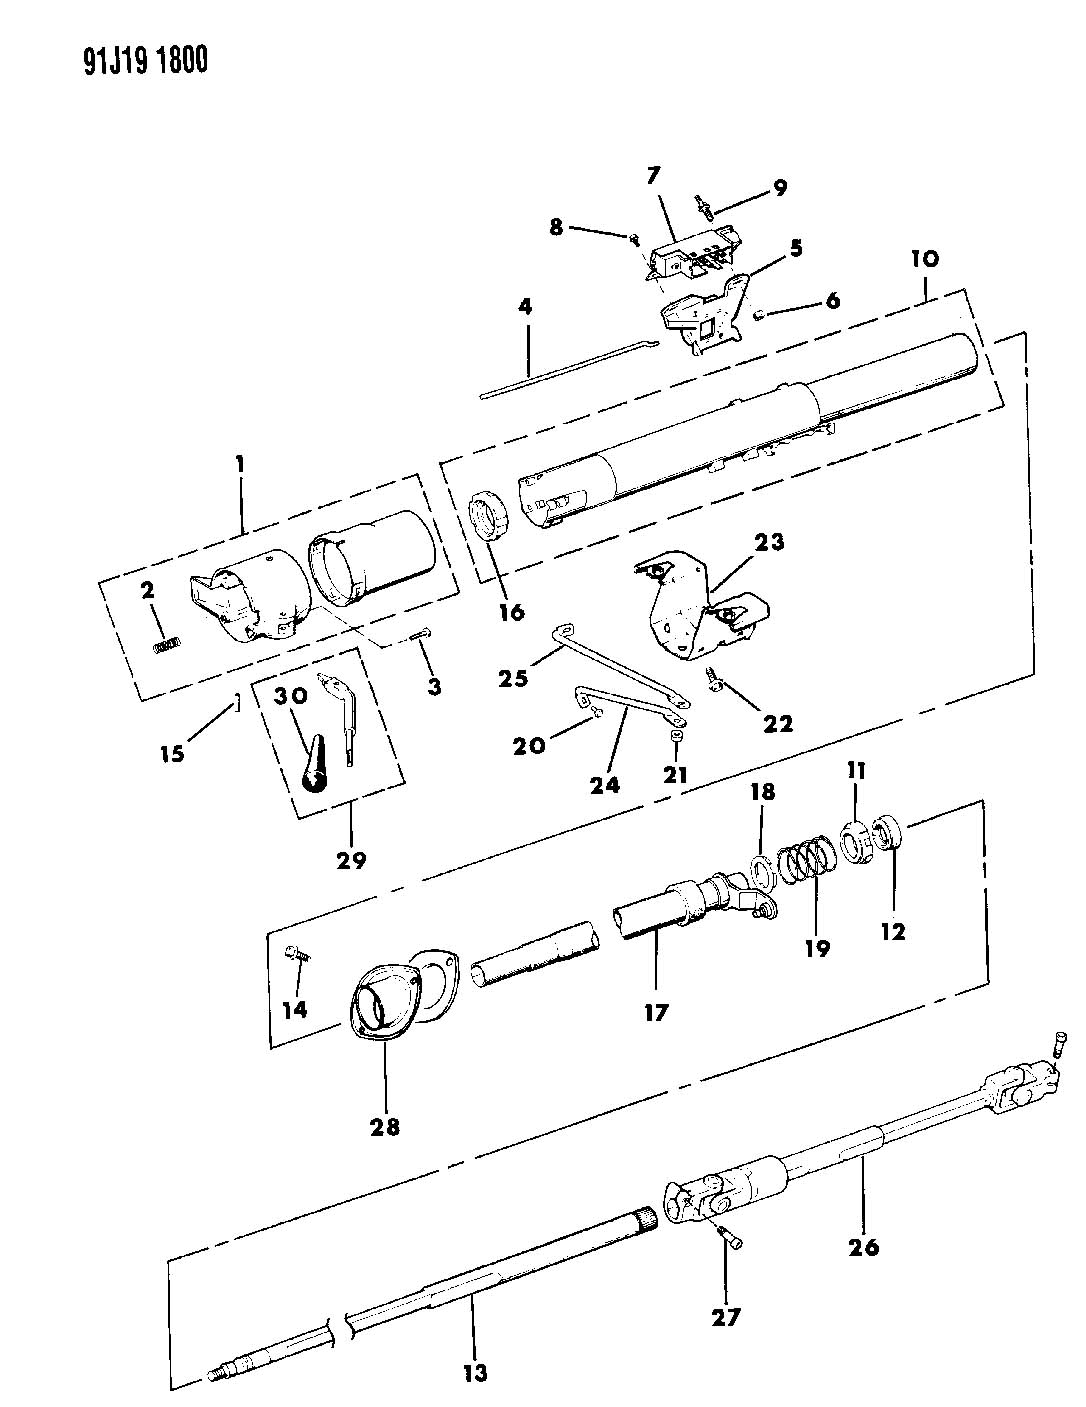 Jeep Anche Tail Light Wiring Diagram 2001 Jeep Grand